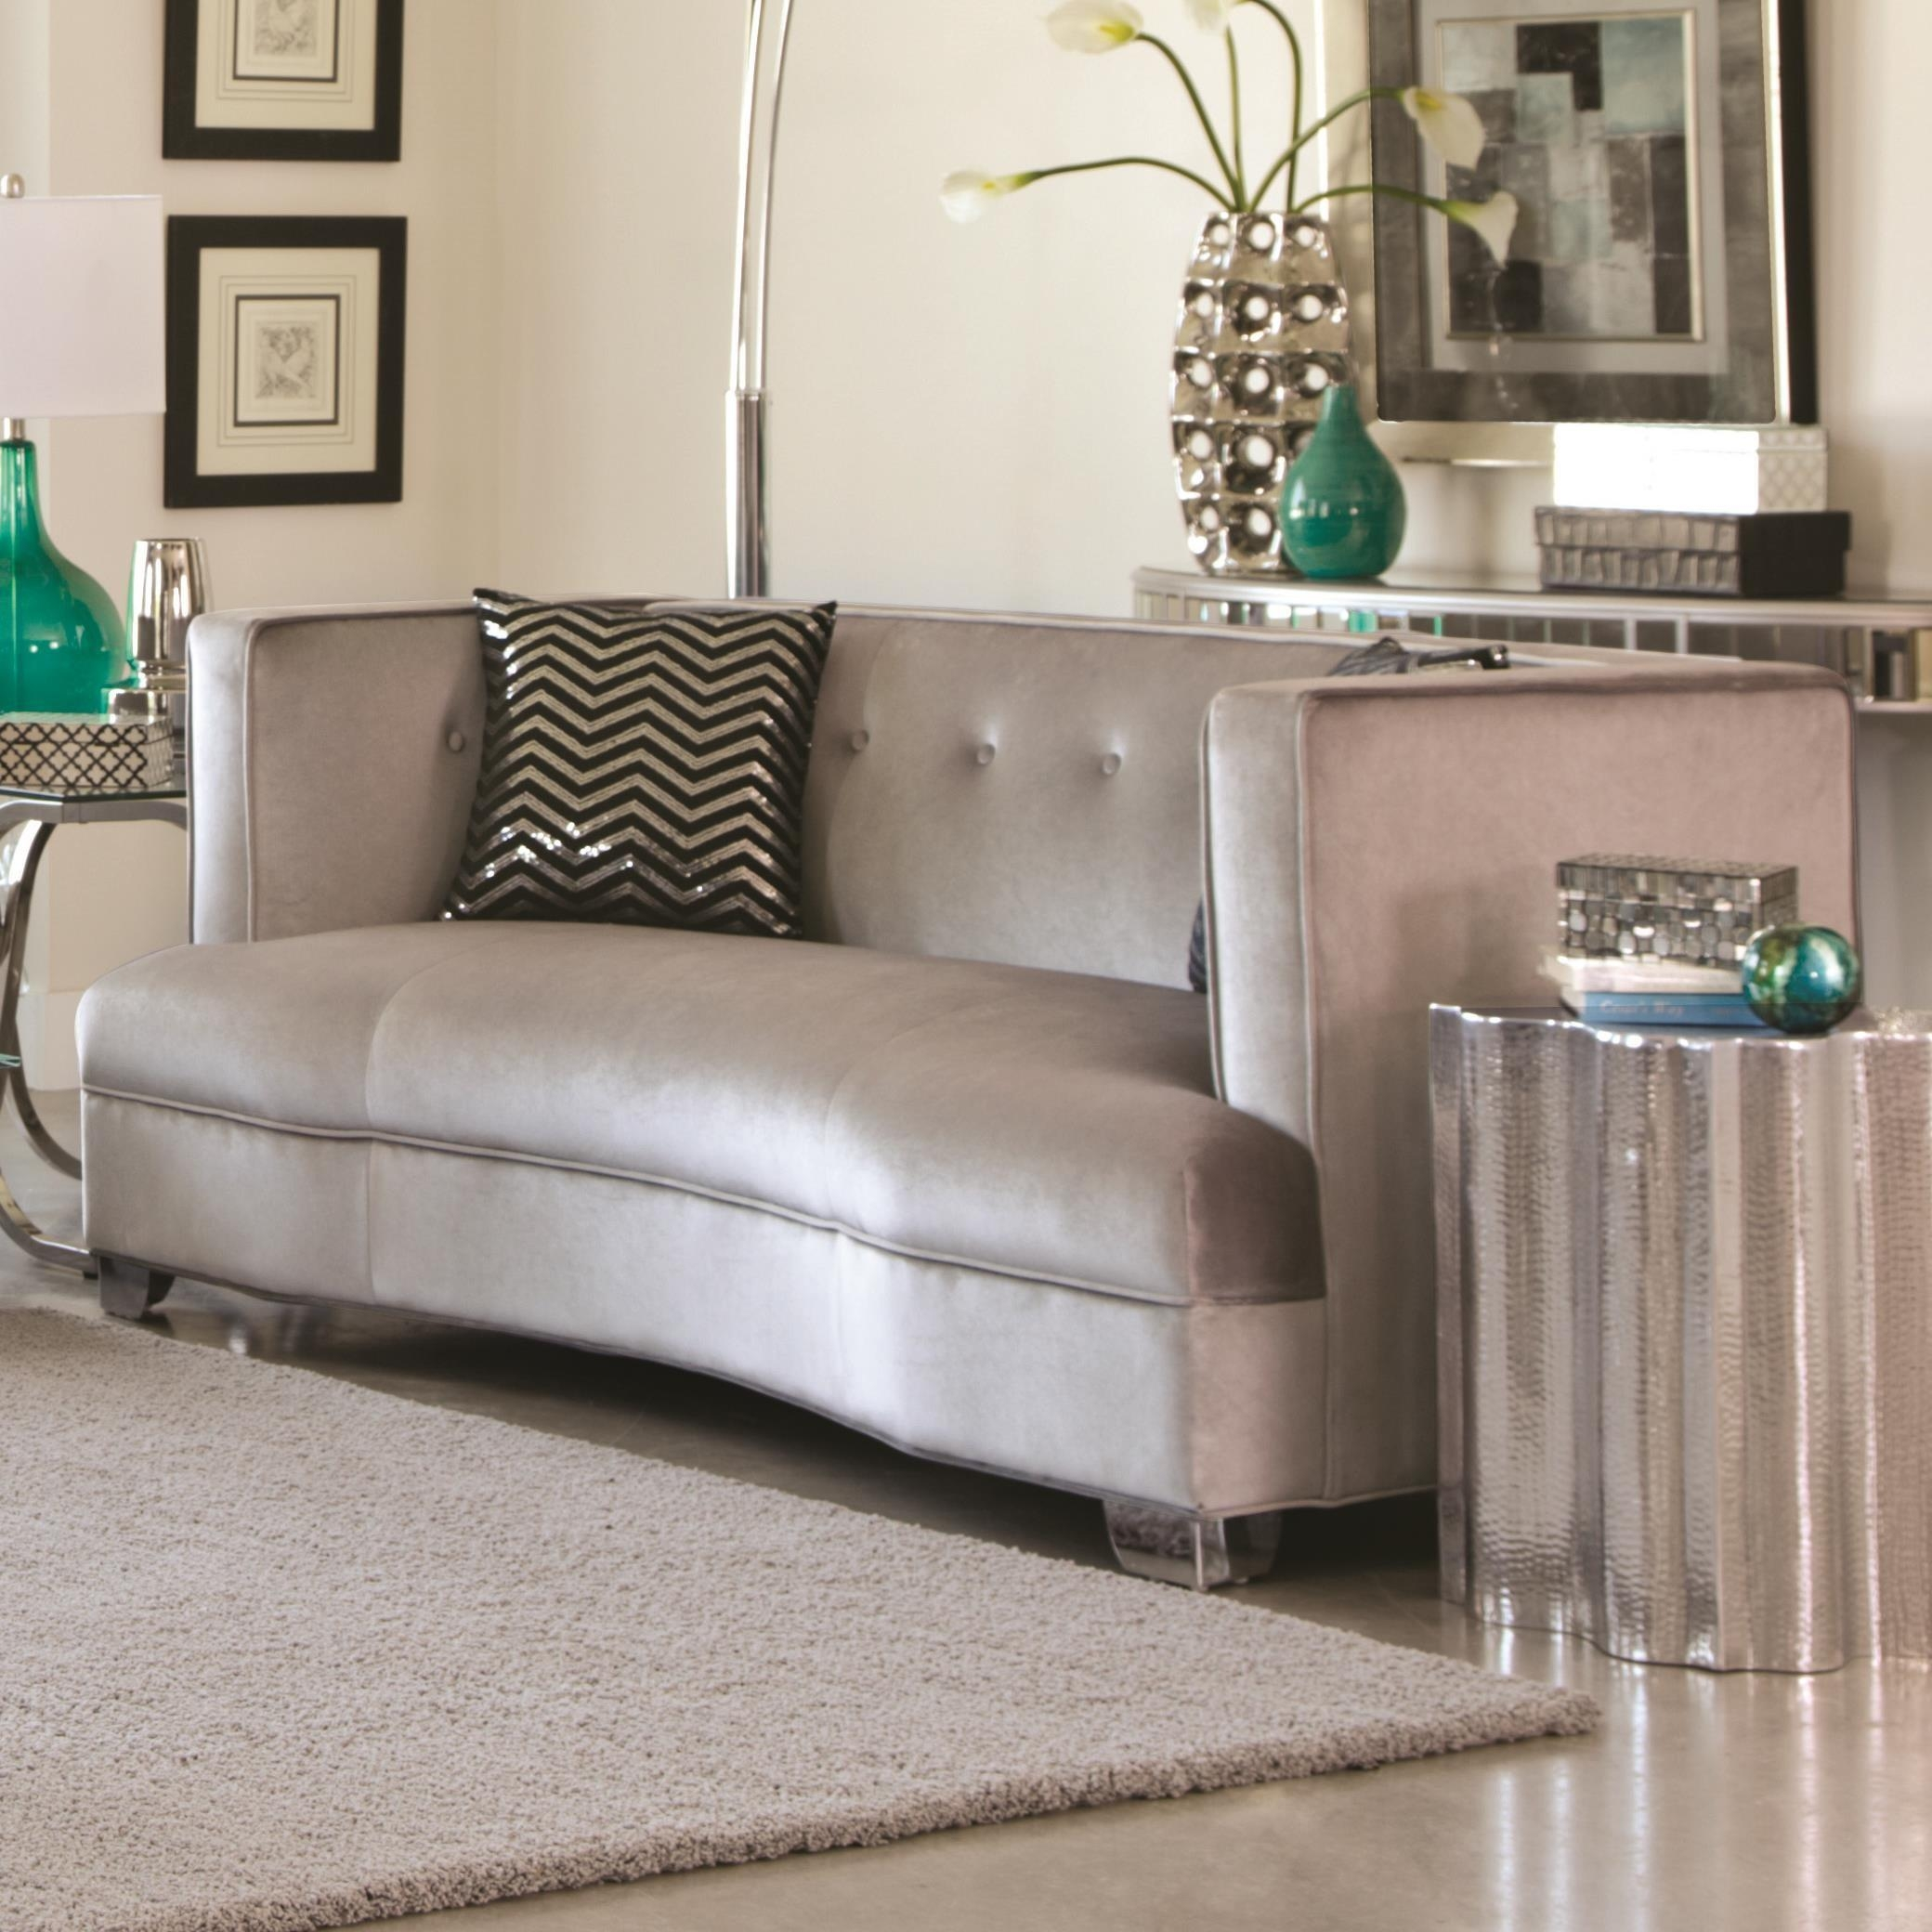 Coaster Furniture 505882 Caldwell Love Seat Silver Velvet Upholstery Inside Coasters Sofas (View 17 of 20)